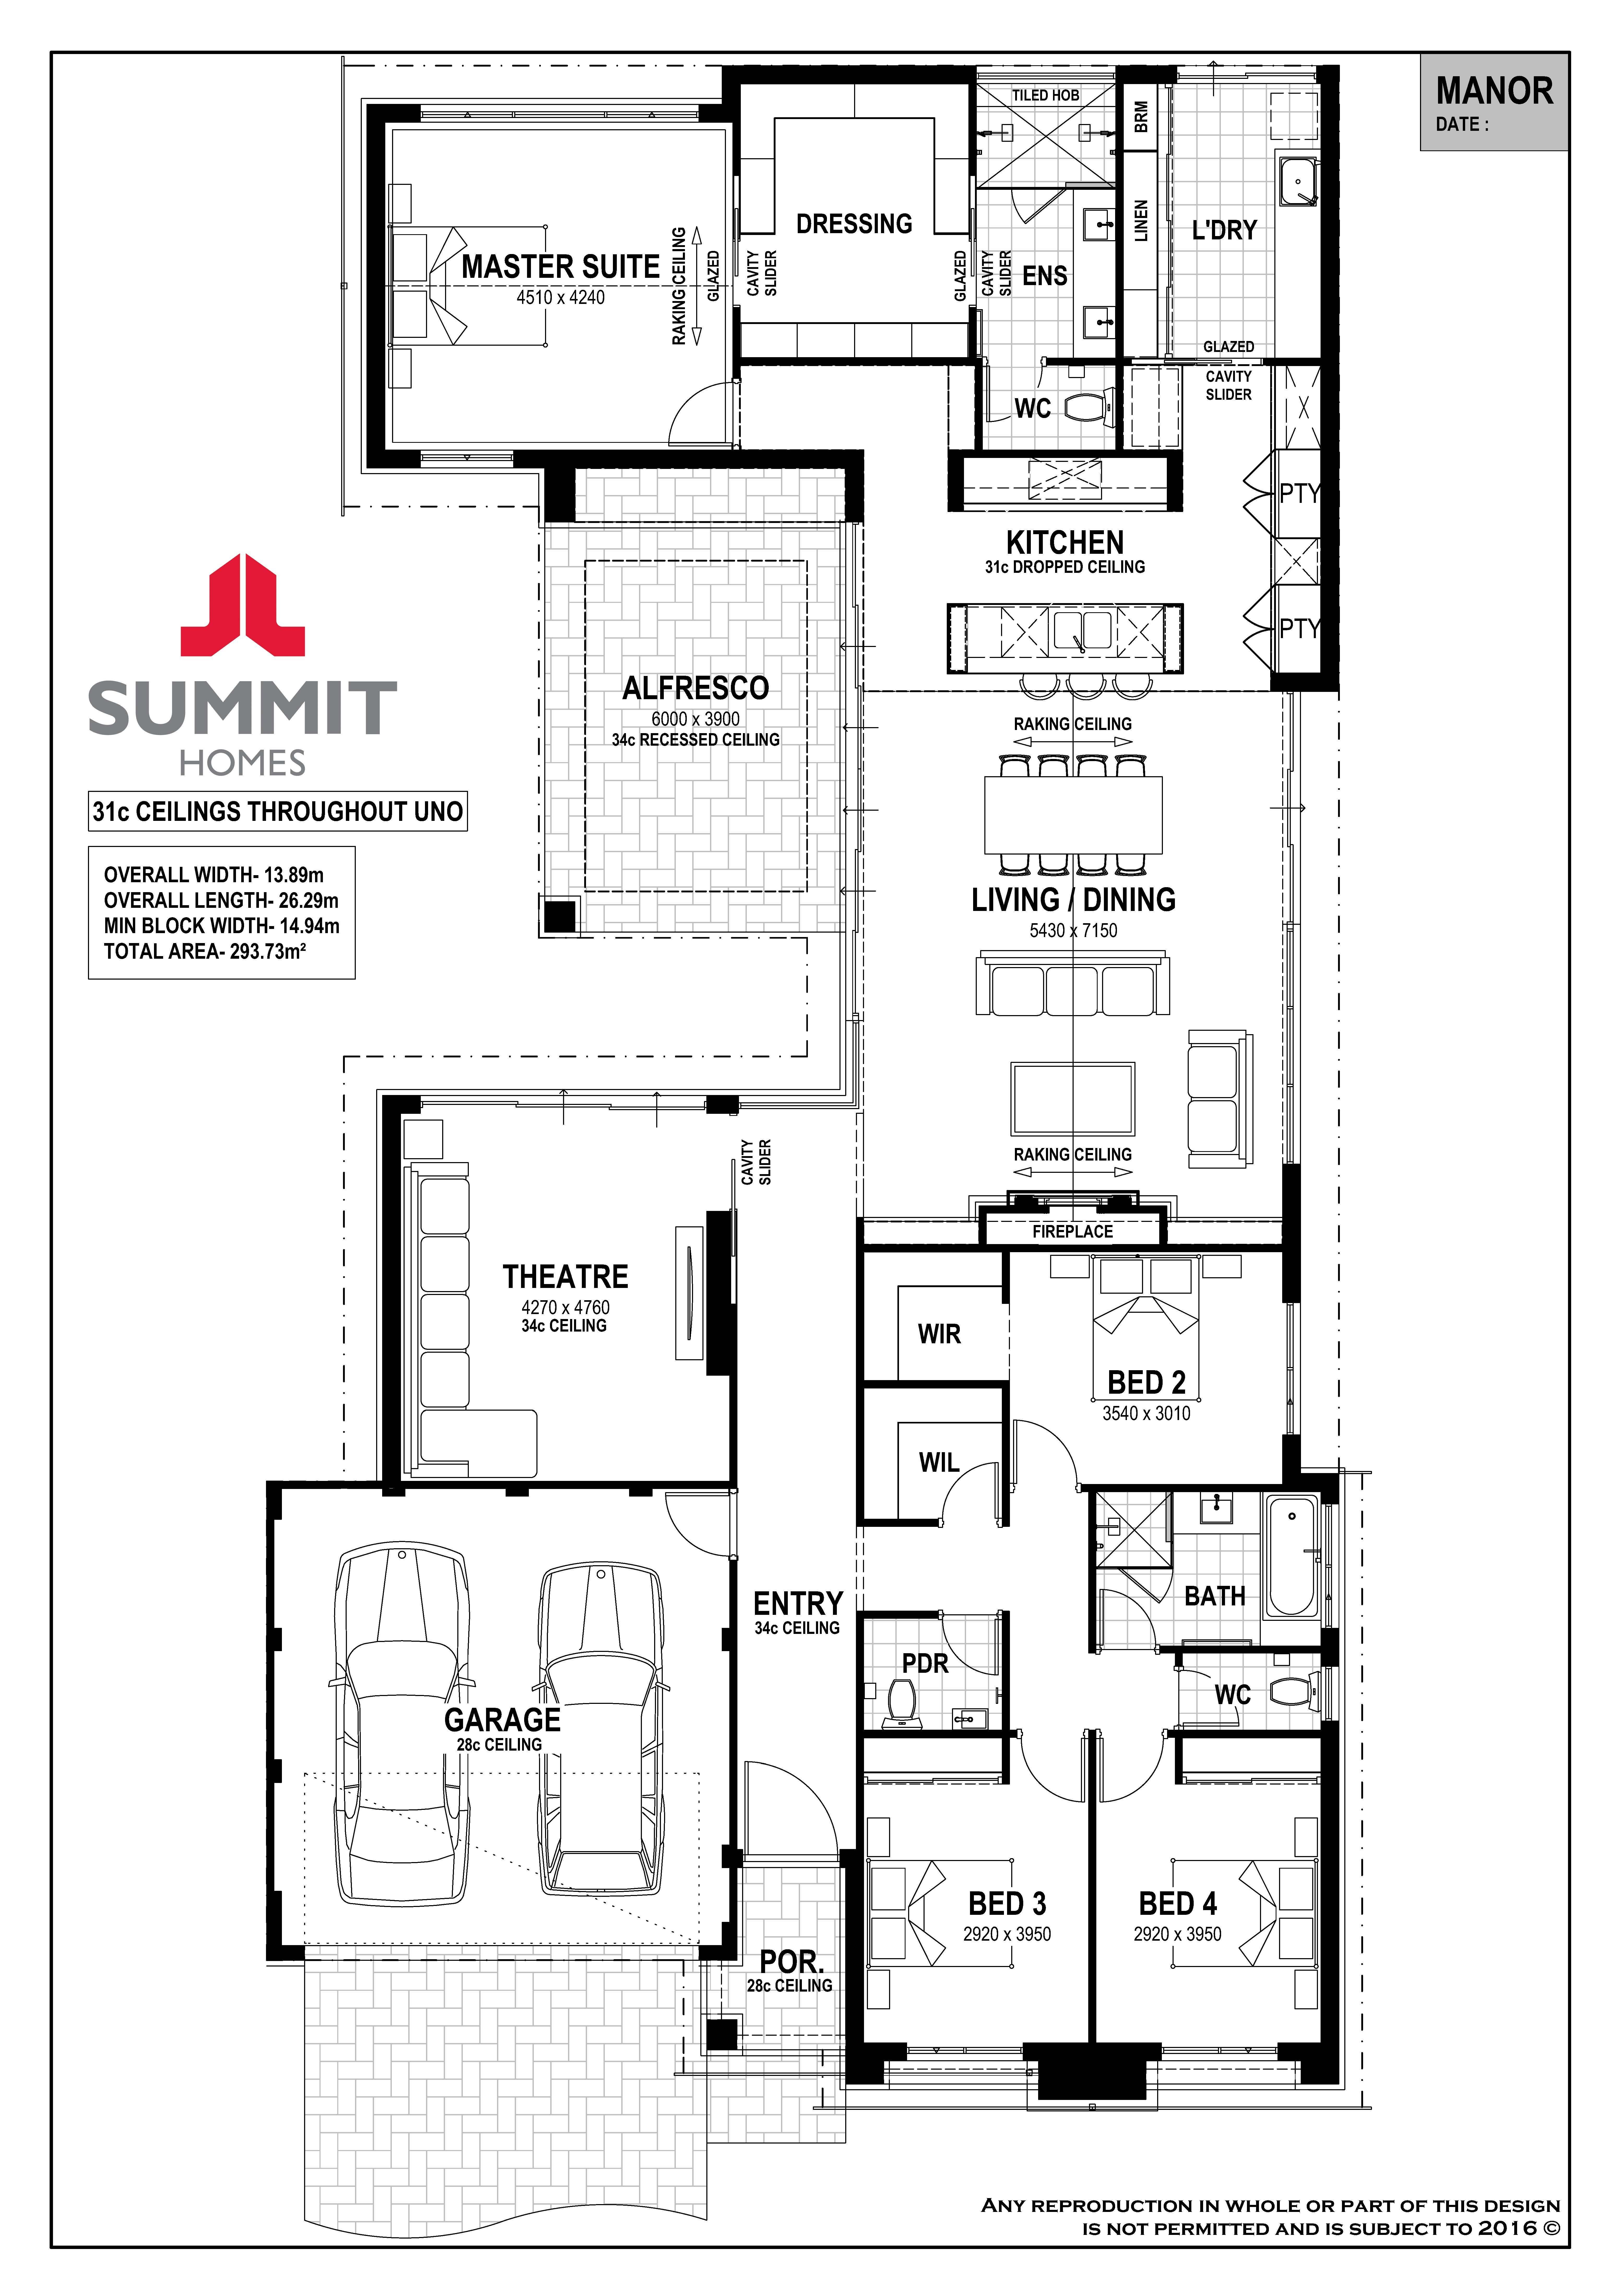 Best House Plans 2021 Software for Drawing House Plans 2021 in 2020 | Drawing house